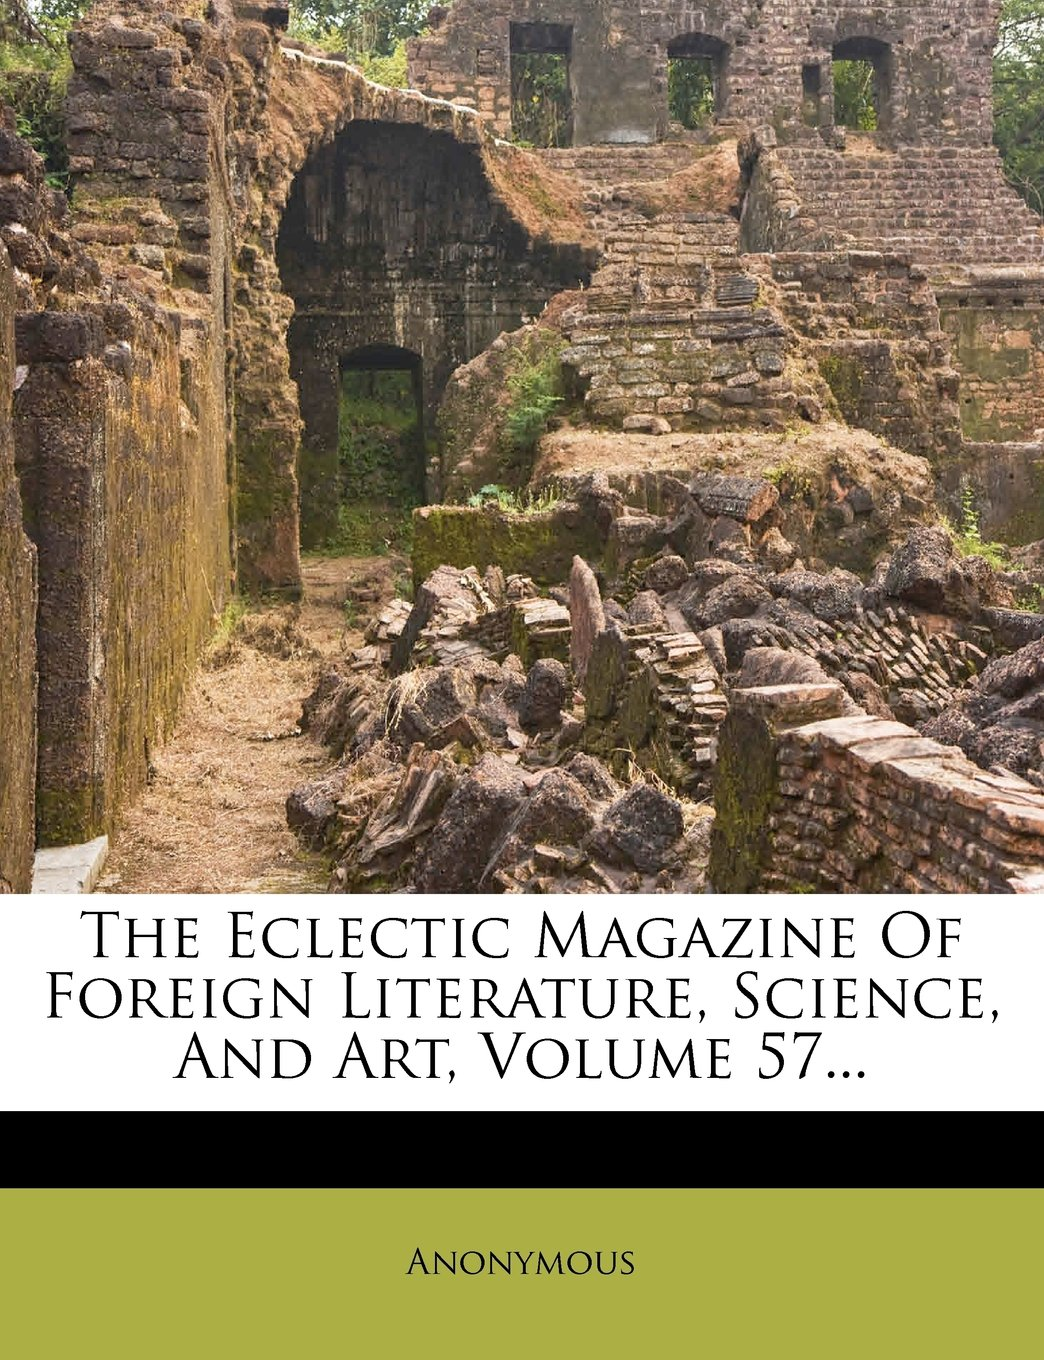 The Eclectic Magazine Of Foreign Literature, Science, And Art, Volume 57... pdf epub